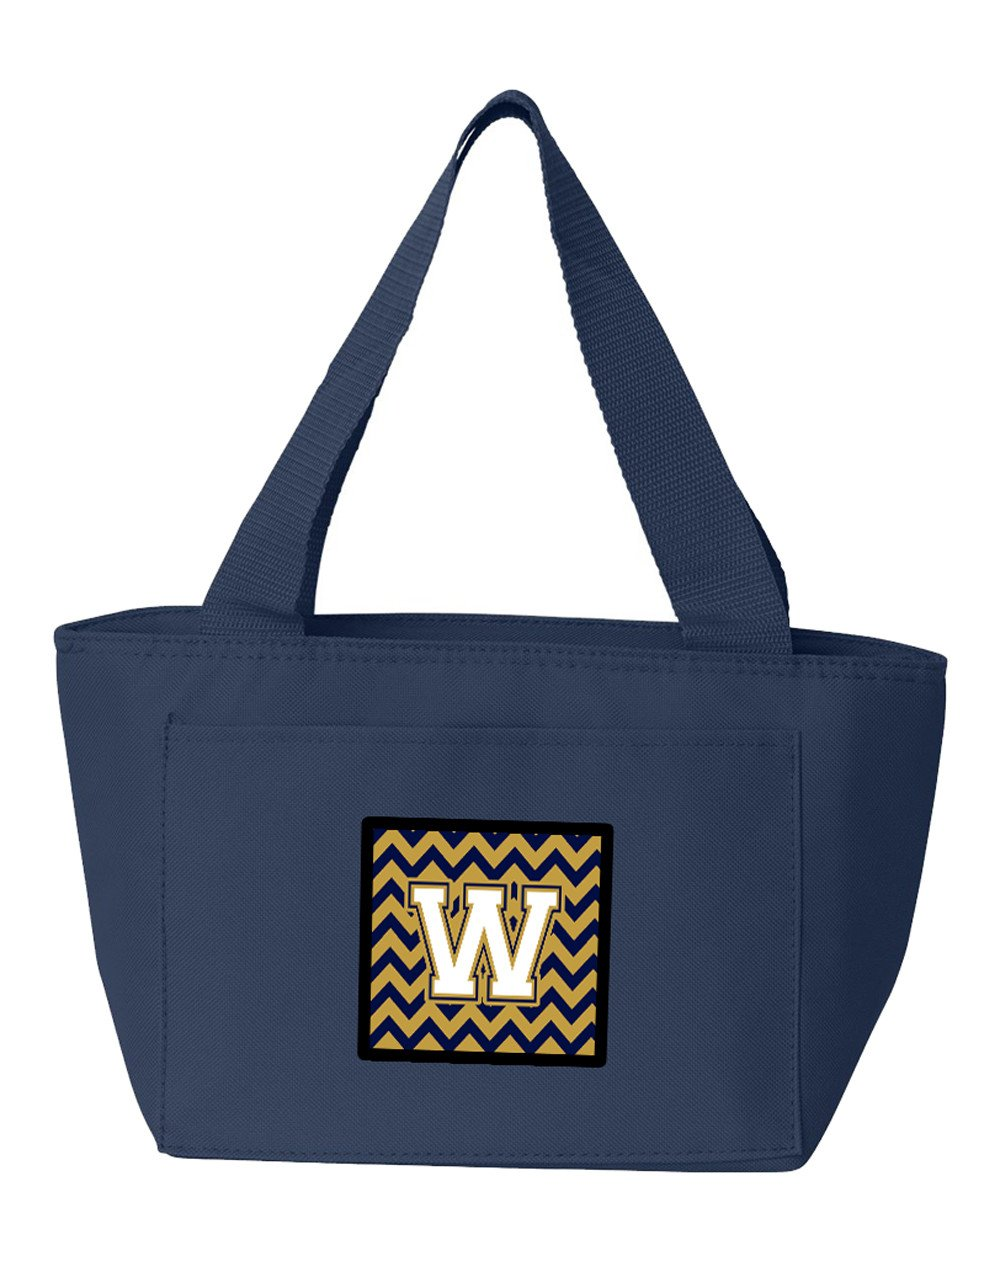 Letter W Chevron Navy Blue and Gold Lunch Bag CJ1057-WNA-8808 by Caroline's Treasures